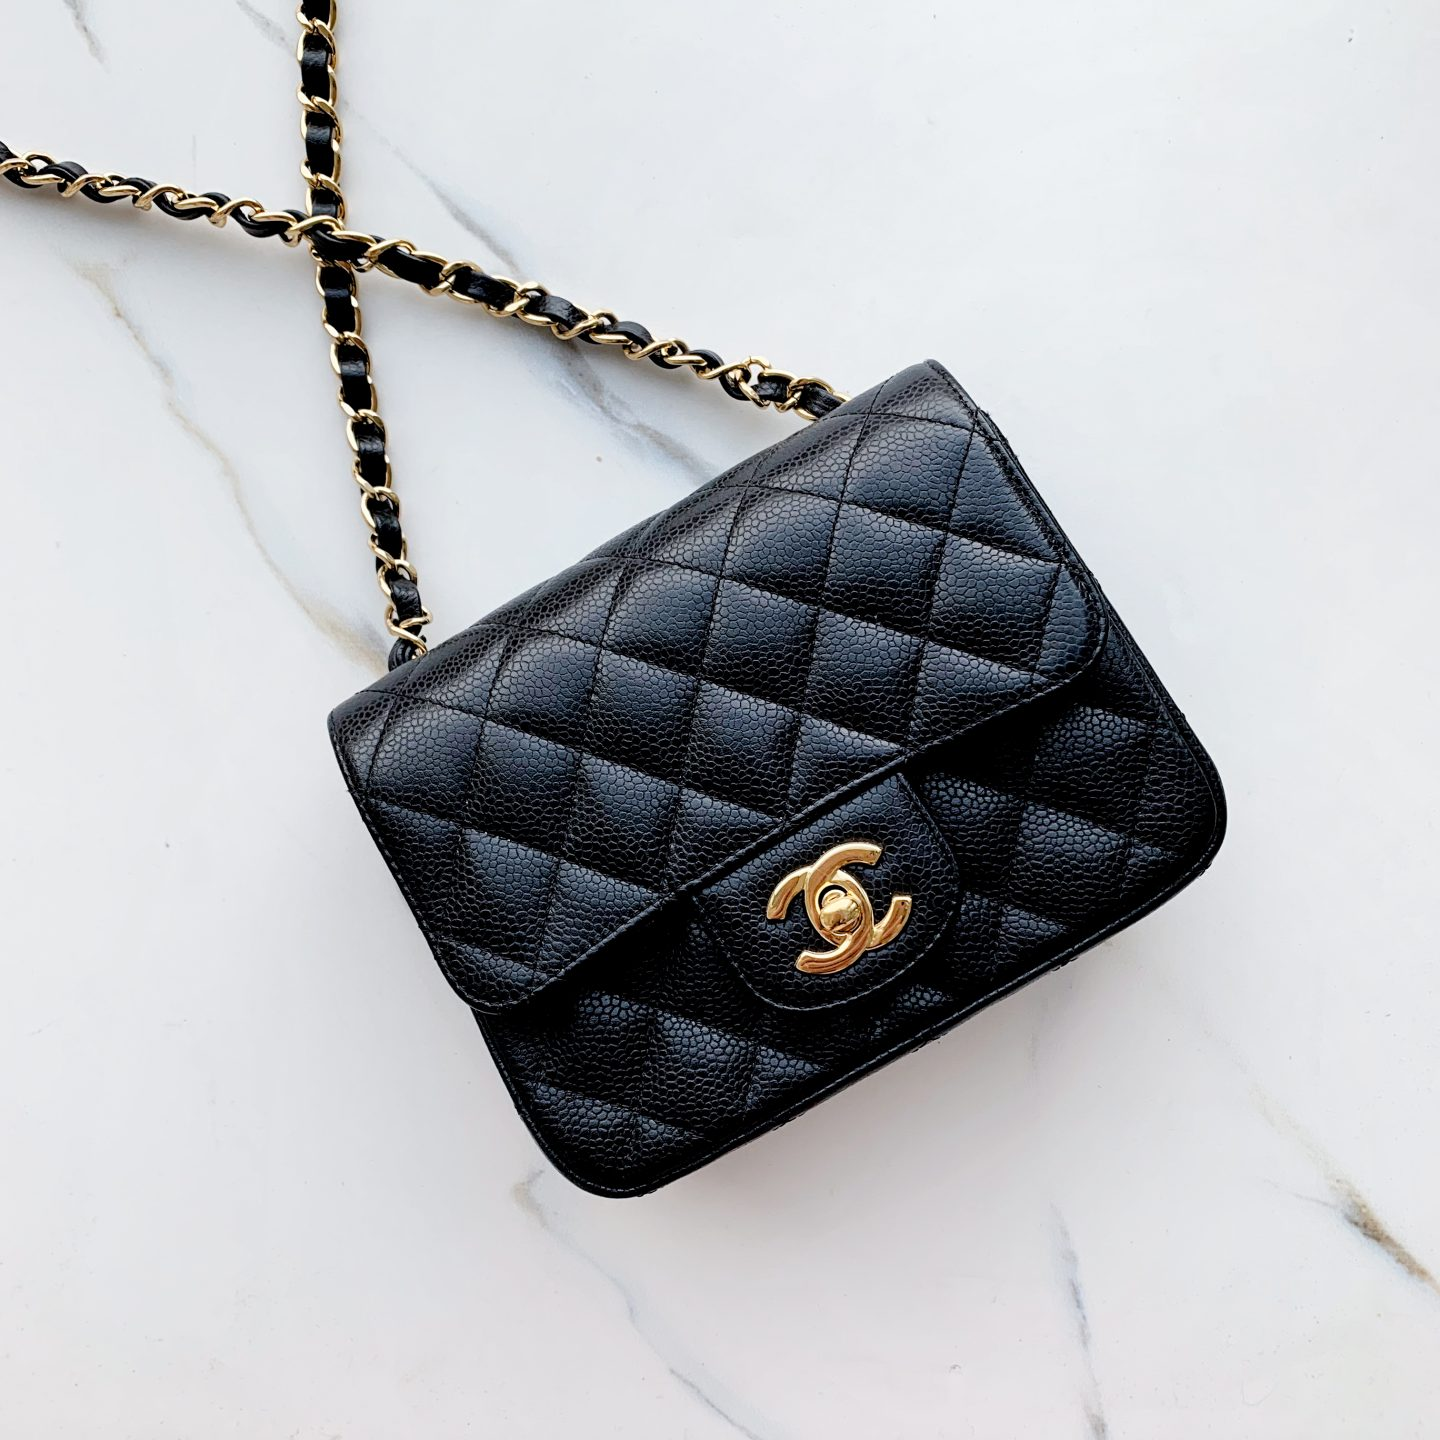 4bdae30361bc Leather and colour are also important factors to consider when deciding on  your first Chanel bag. Chanel offer many different varieties however the  two most ...